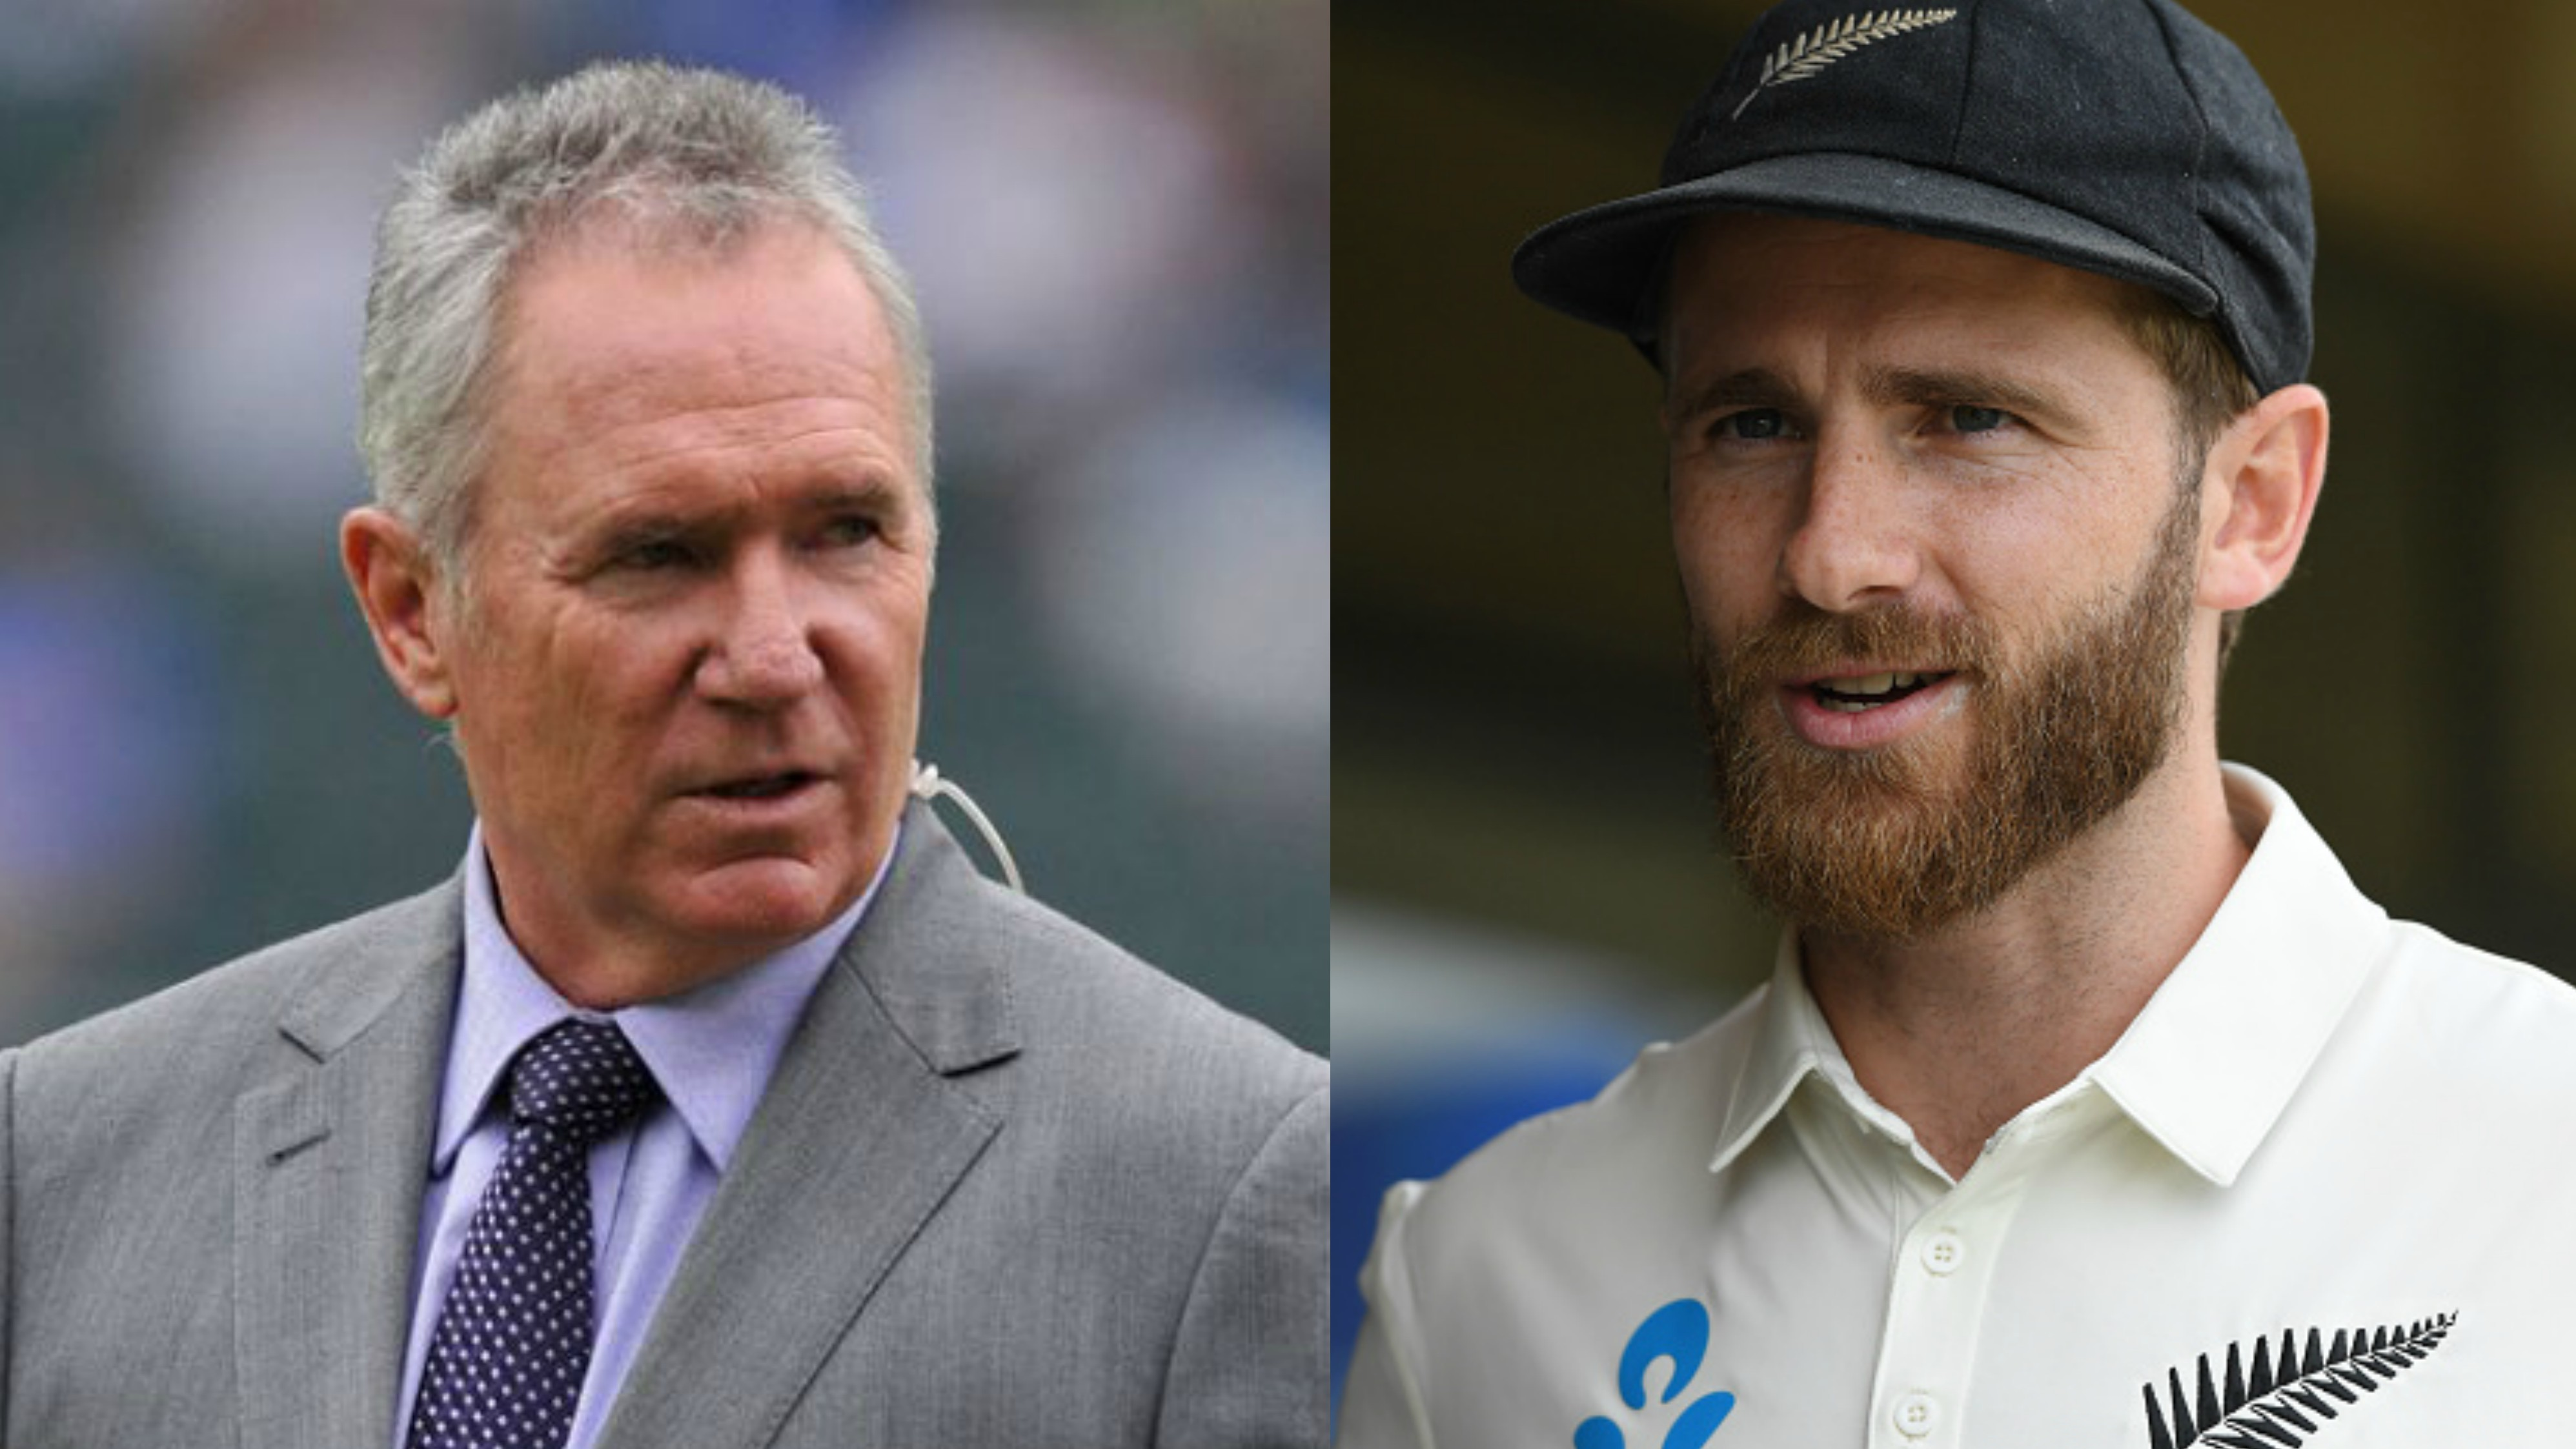 AUS v NZ 2019-20: Allan Border speaks on New Zealand's chances in the upcoming Test series